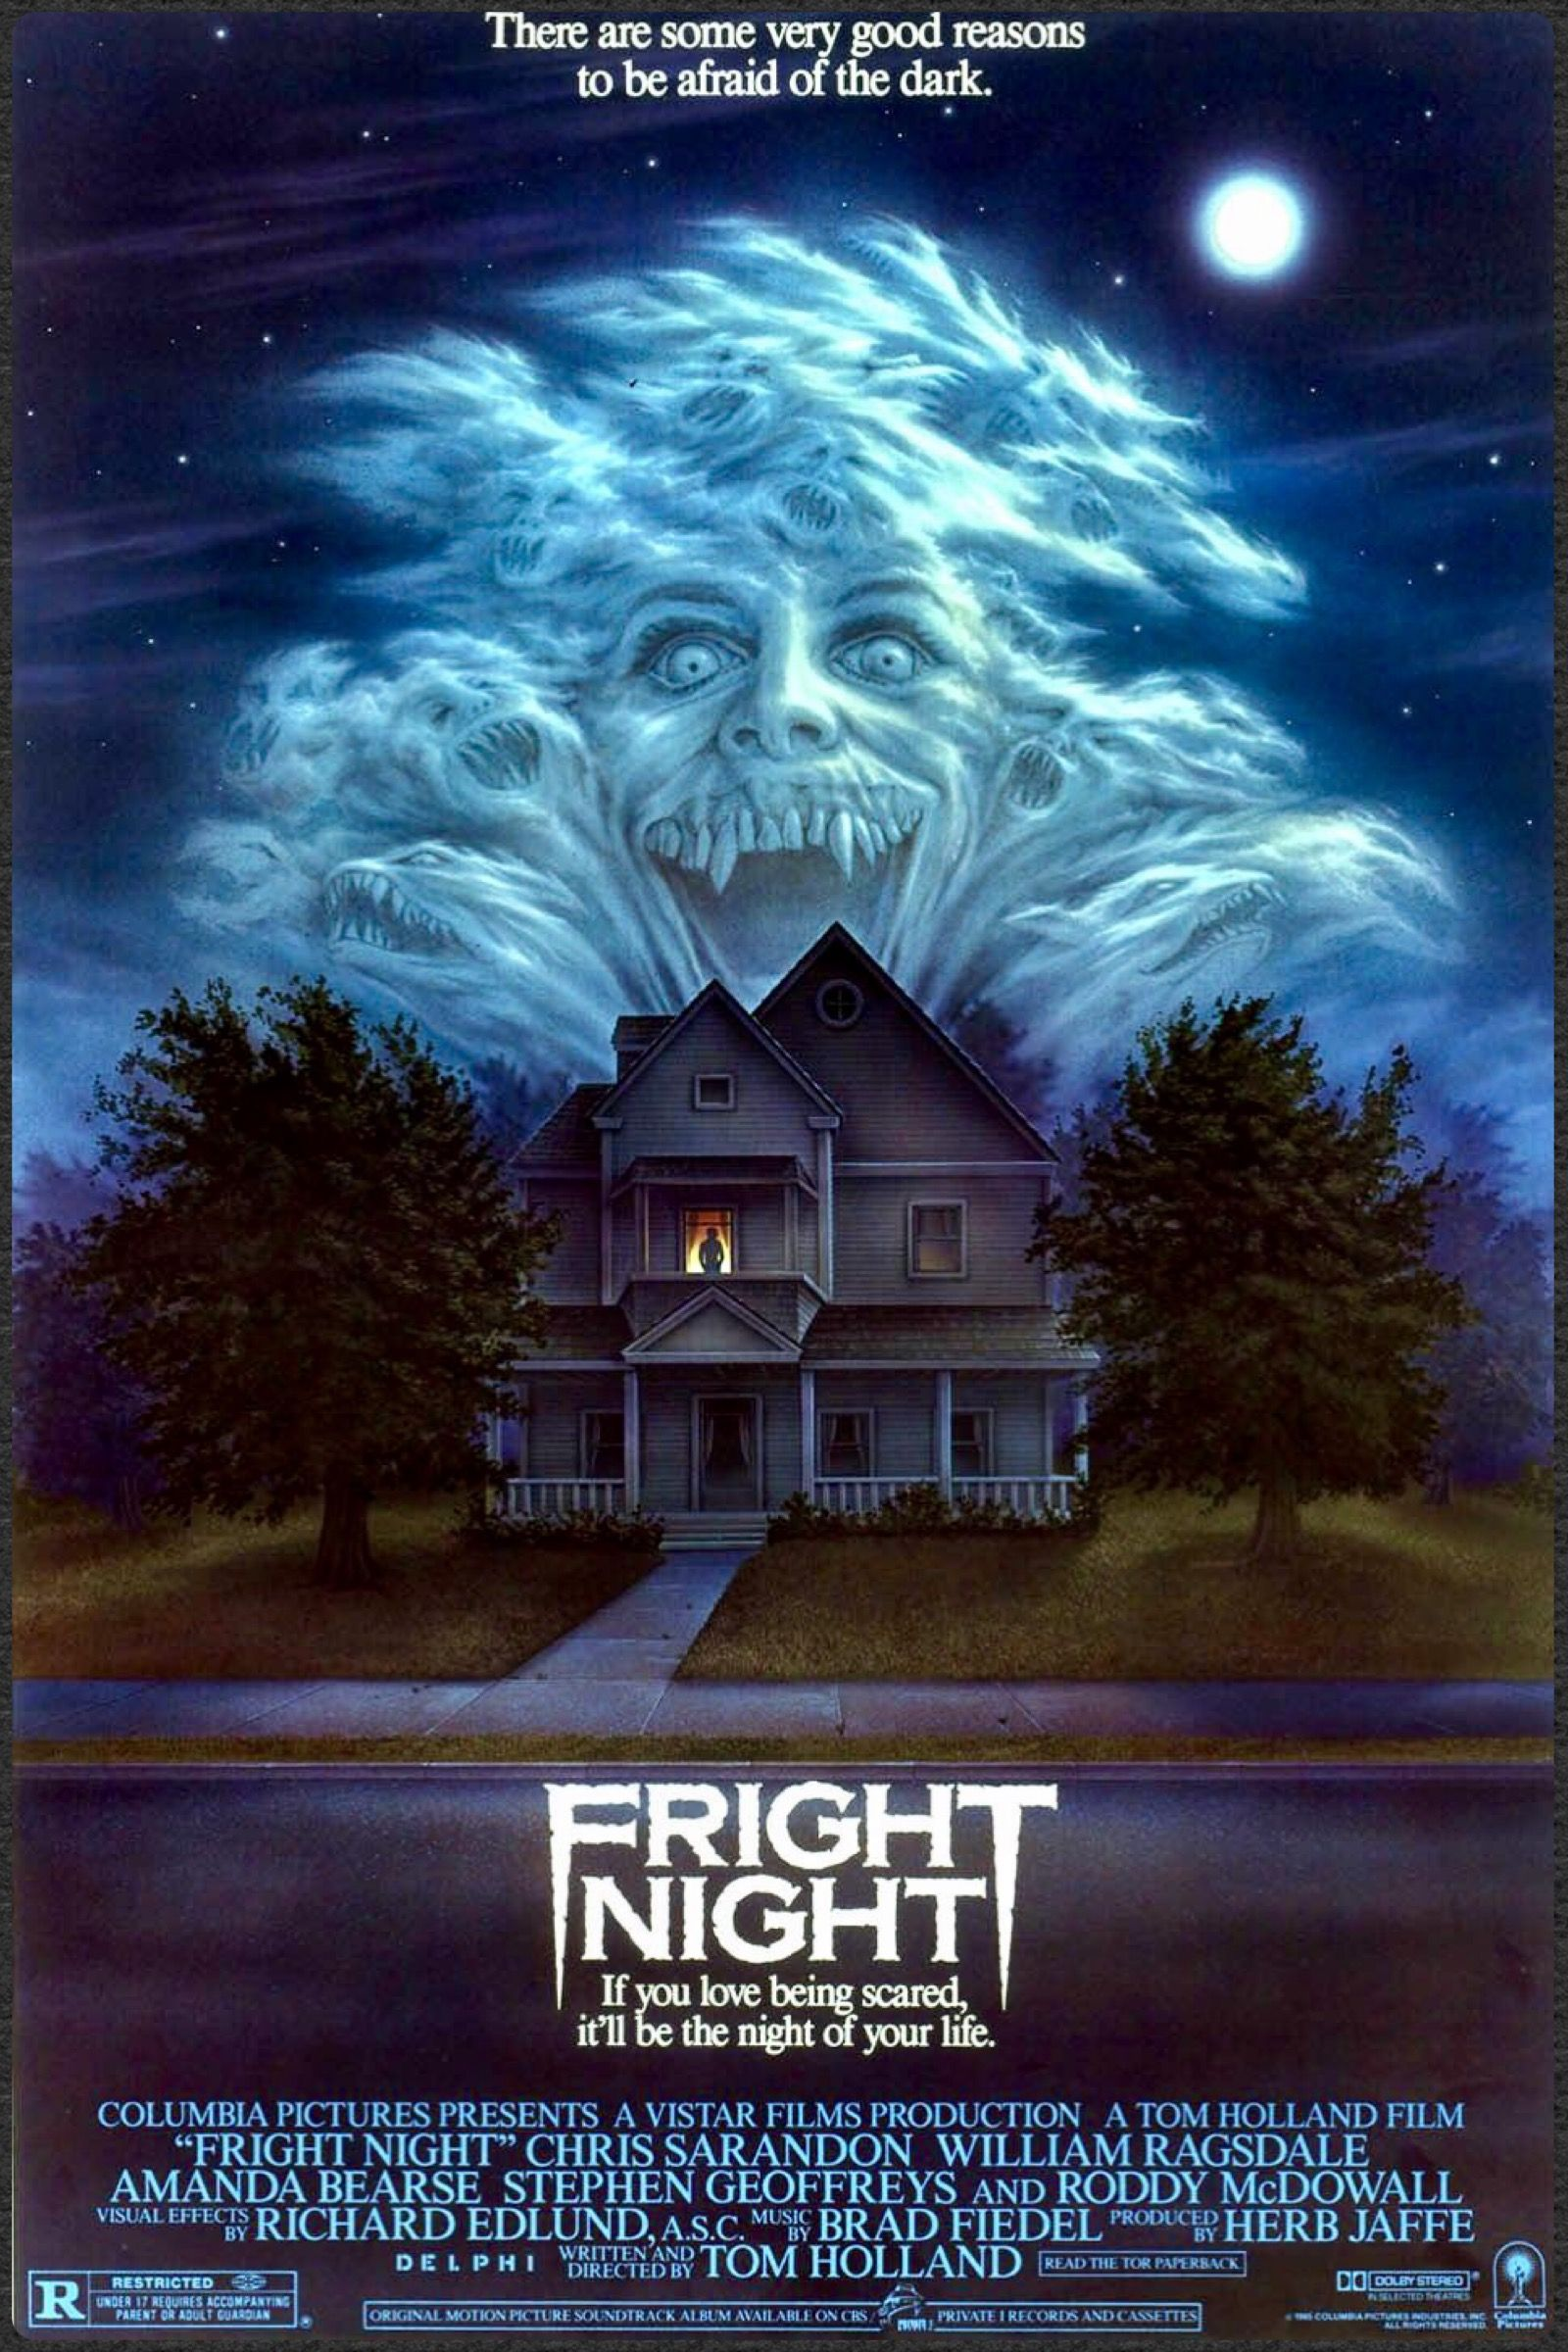 Fright Night Fright Night Scary Movies Horror Films